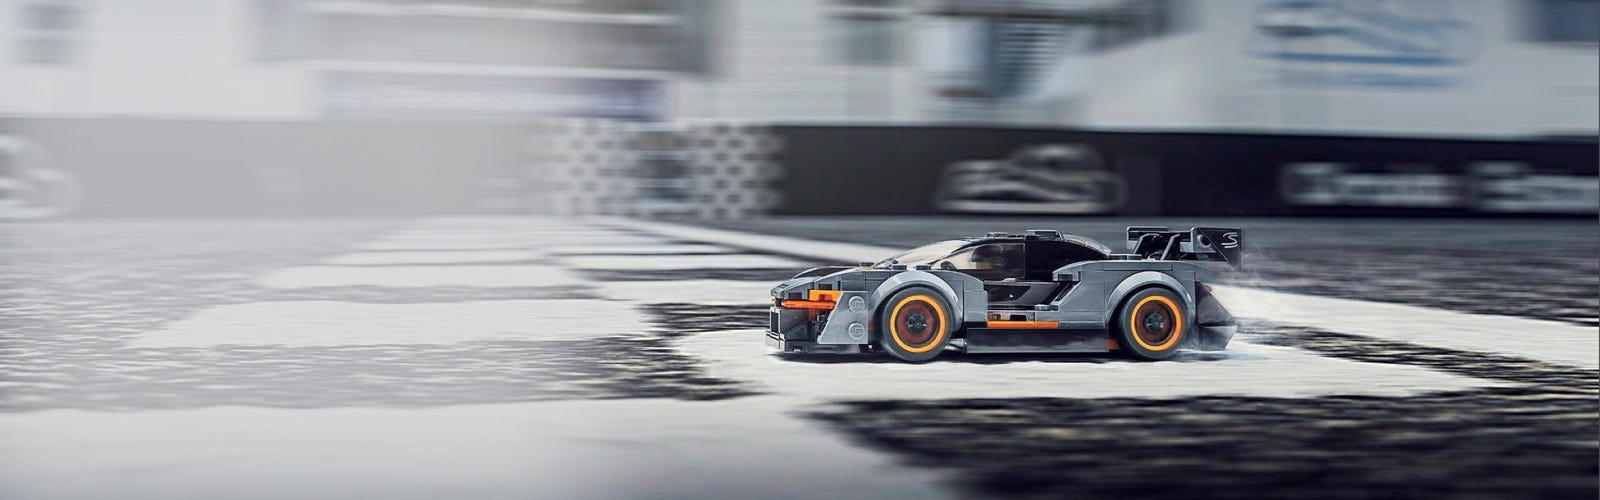 Speed Champions Product 75892 McLaren Senna LEGO model